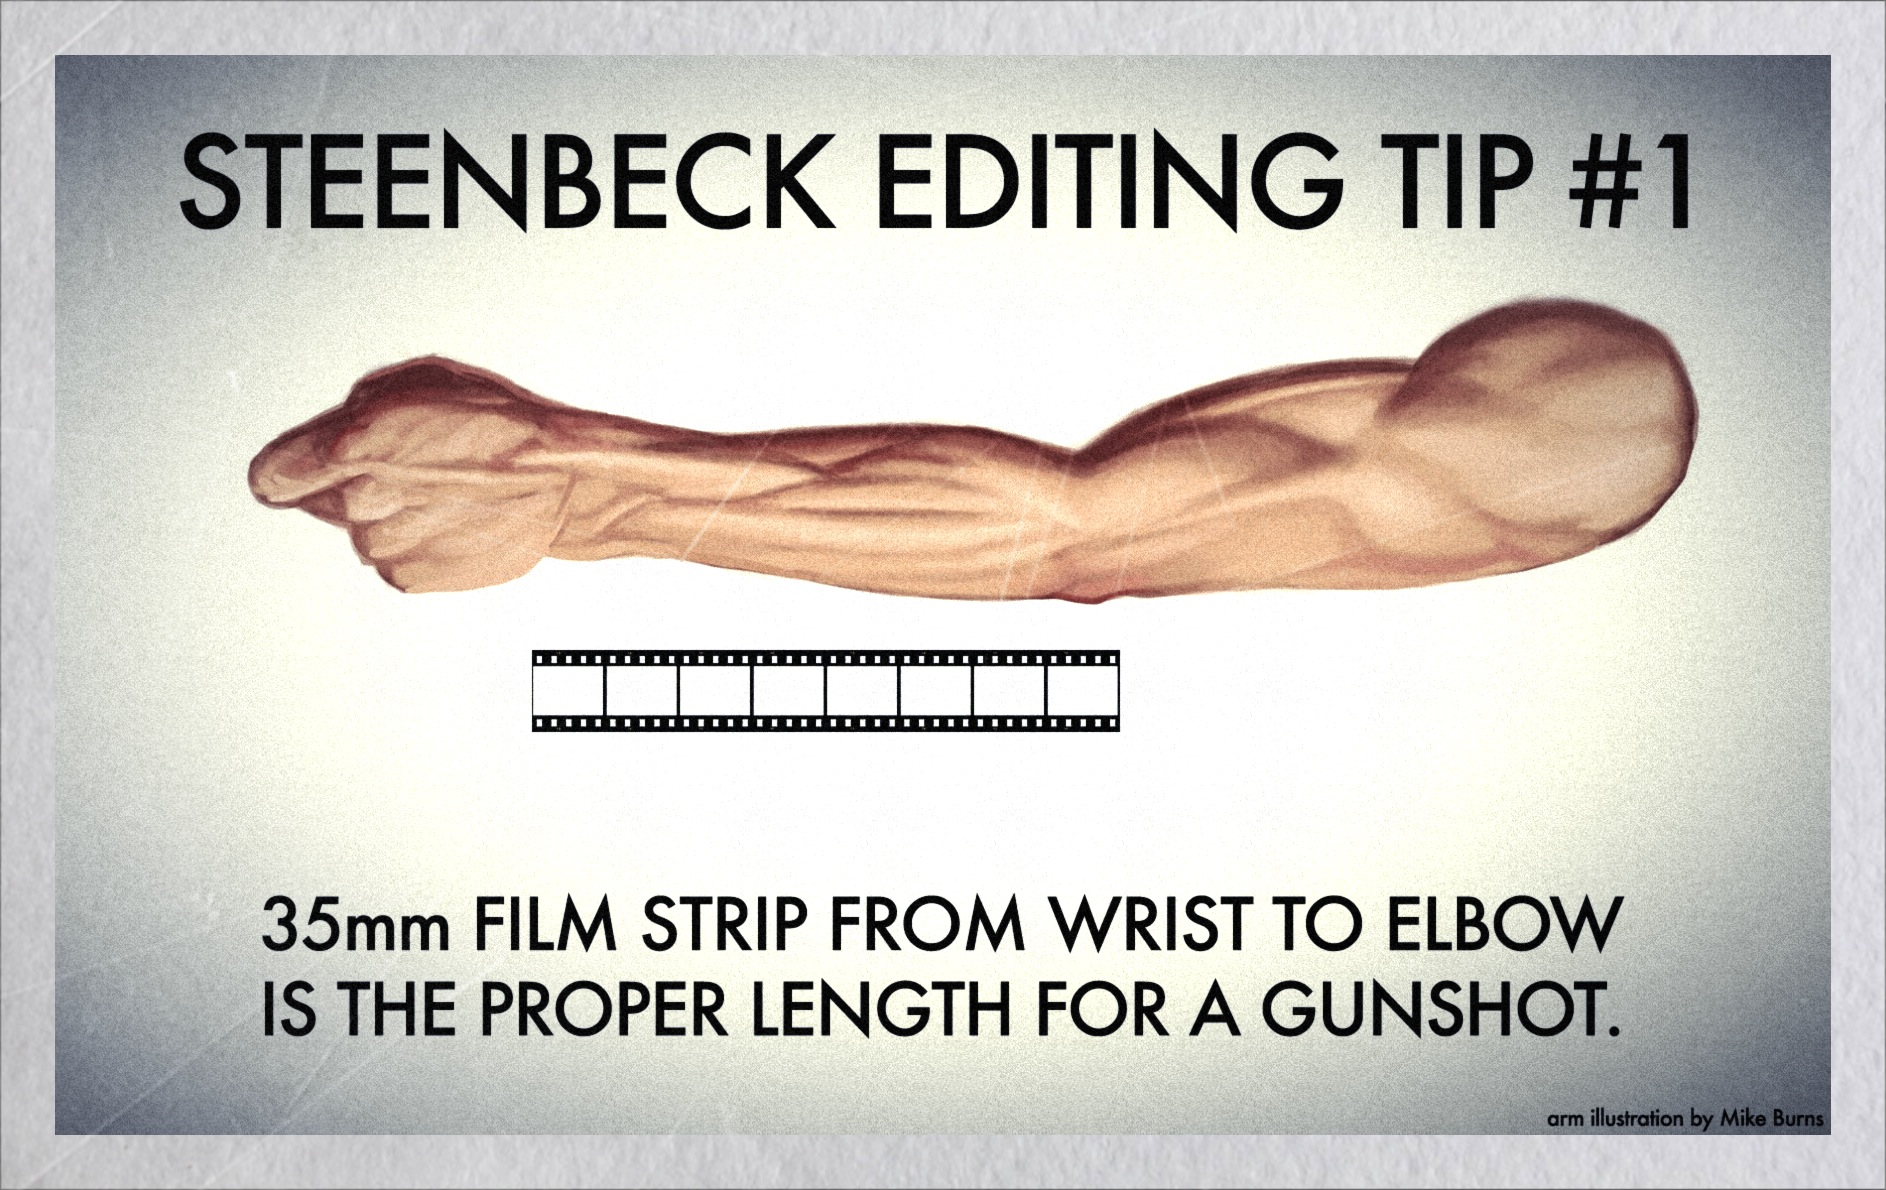 Old school editing tip